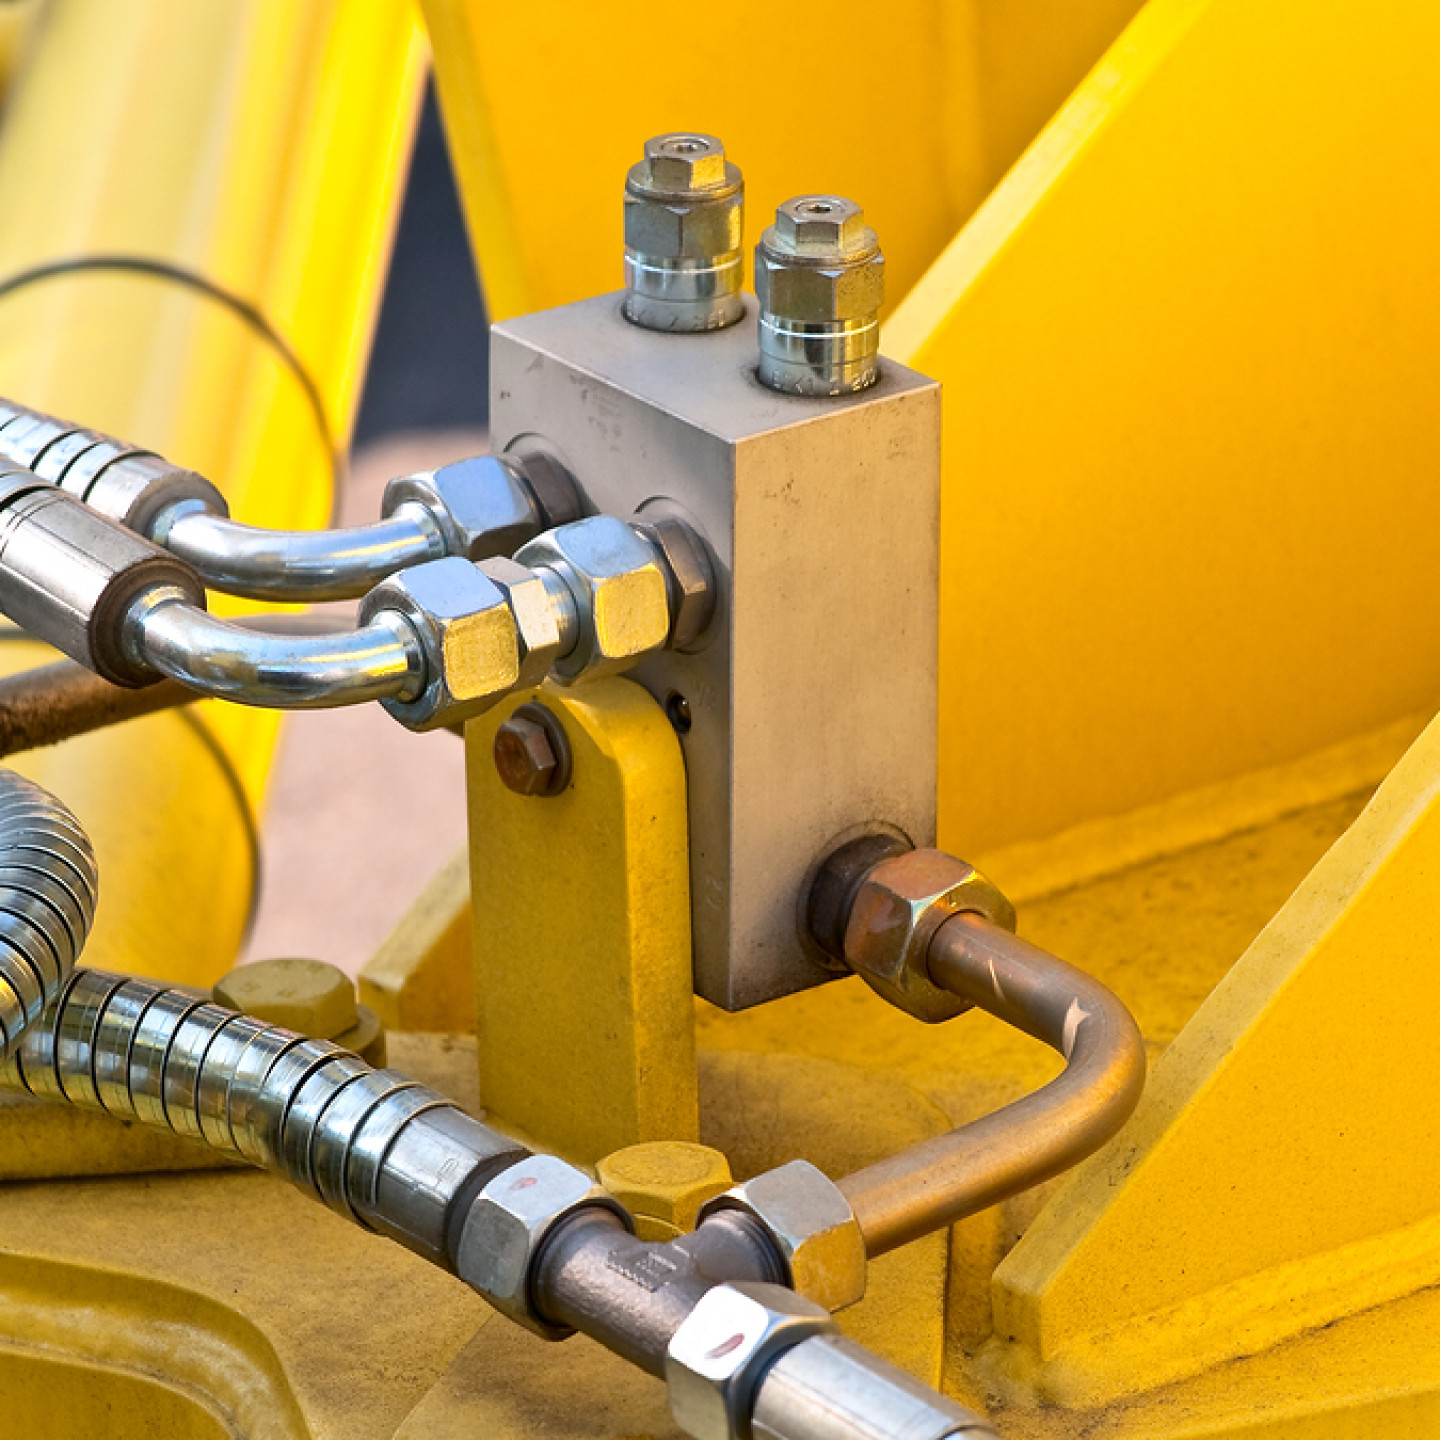 Air & Hydraulic Services Co in Statesville, NC for Hydraulic Cylinders, Hydraulic Hoses, and Hydraulic Repair